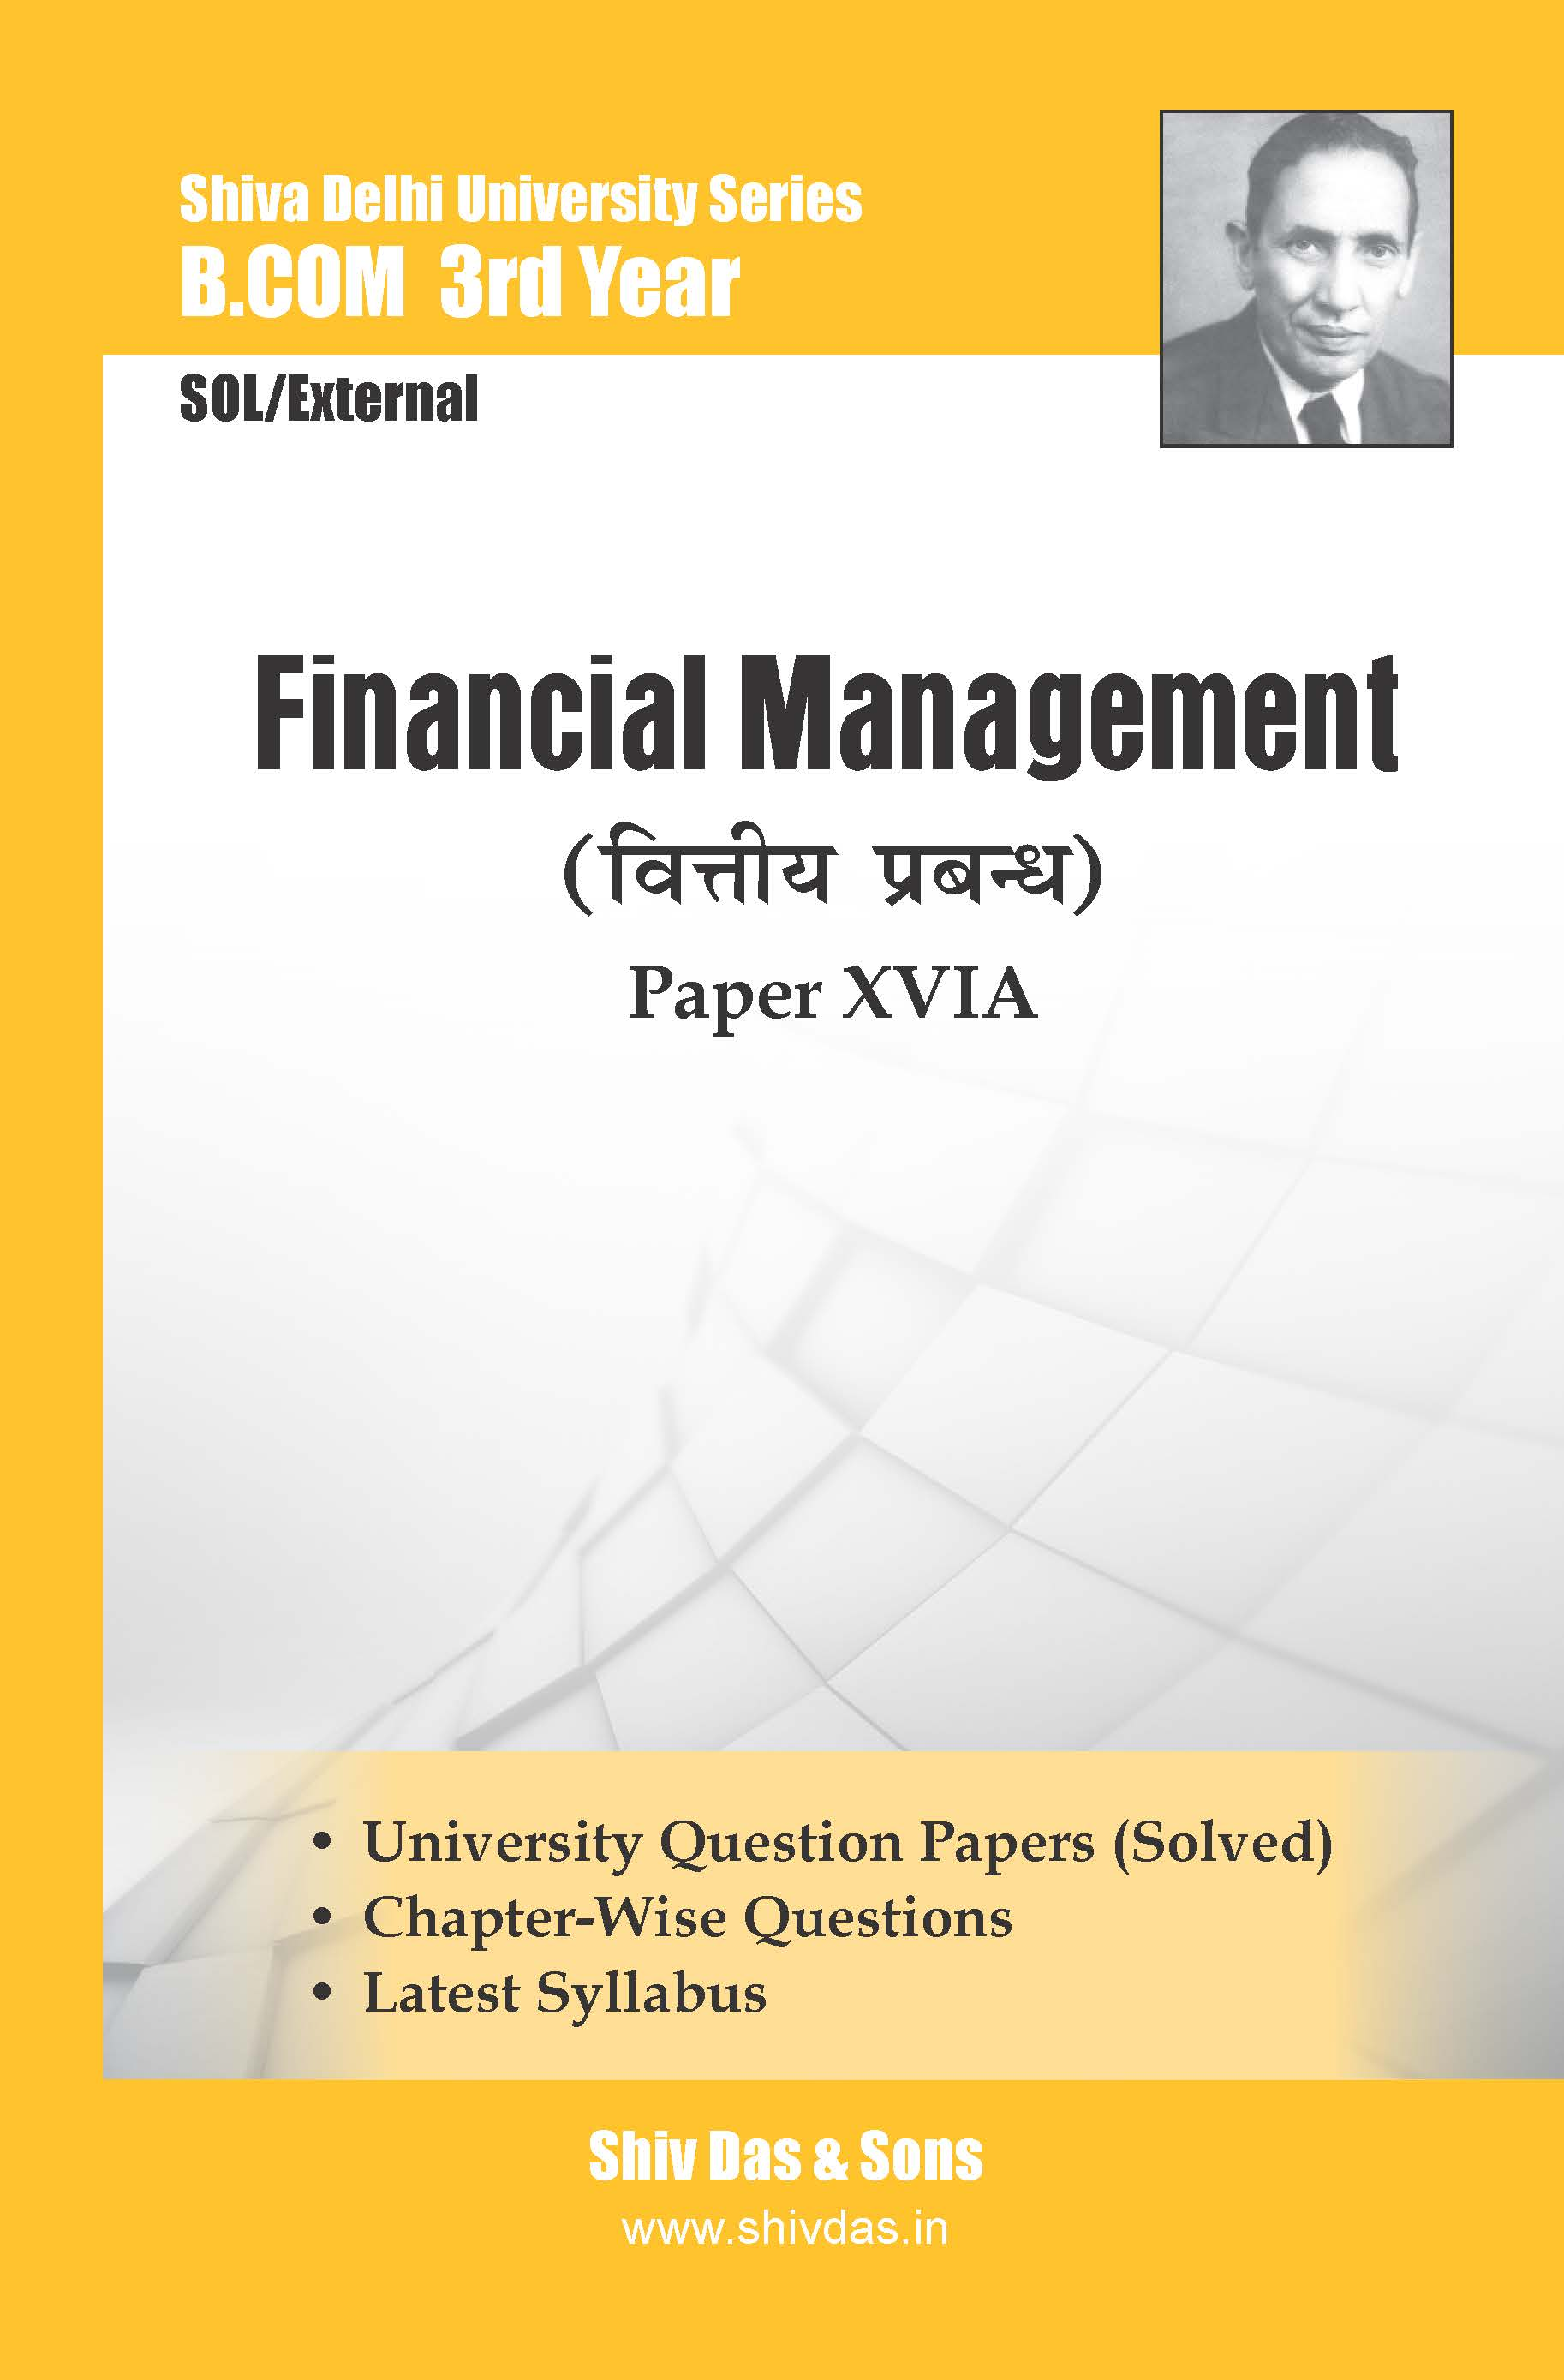 B.Com-3rd Year-SOL/External-Financial Management (Hindi Medium)-Shiv Das-Delhi University Series